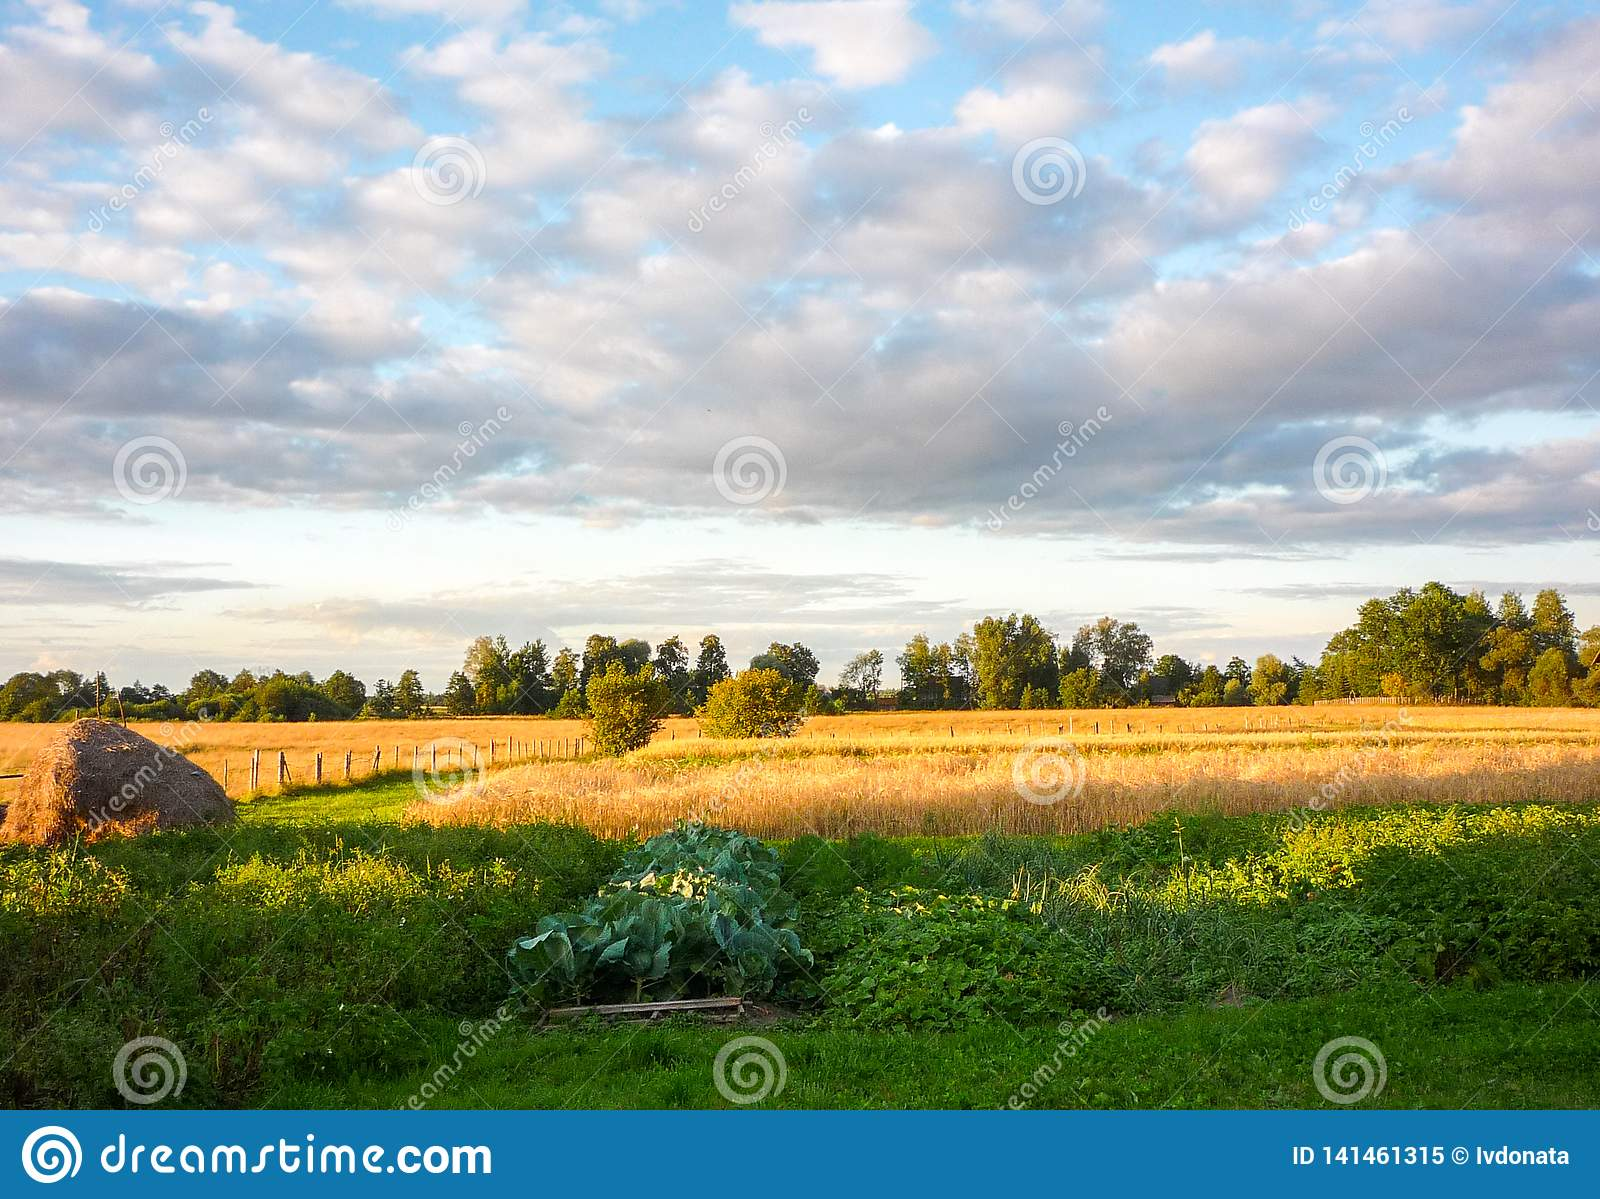 Wheat grain field on summer cloudy day. Stack of hay and beds with vegetables in the foreground